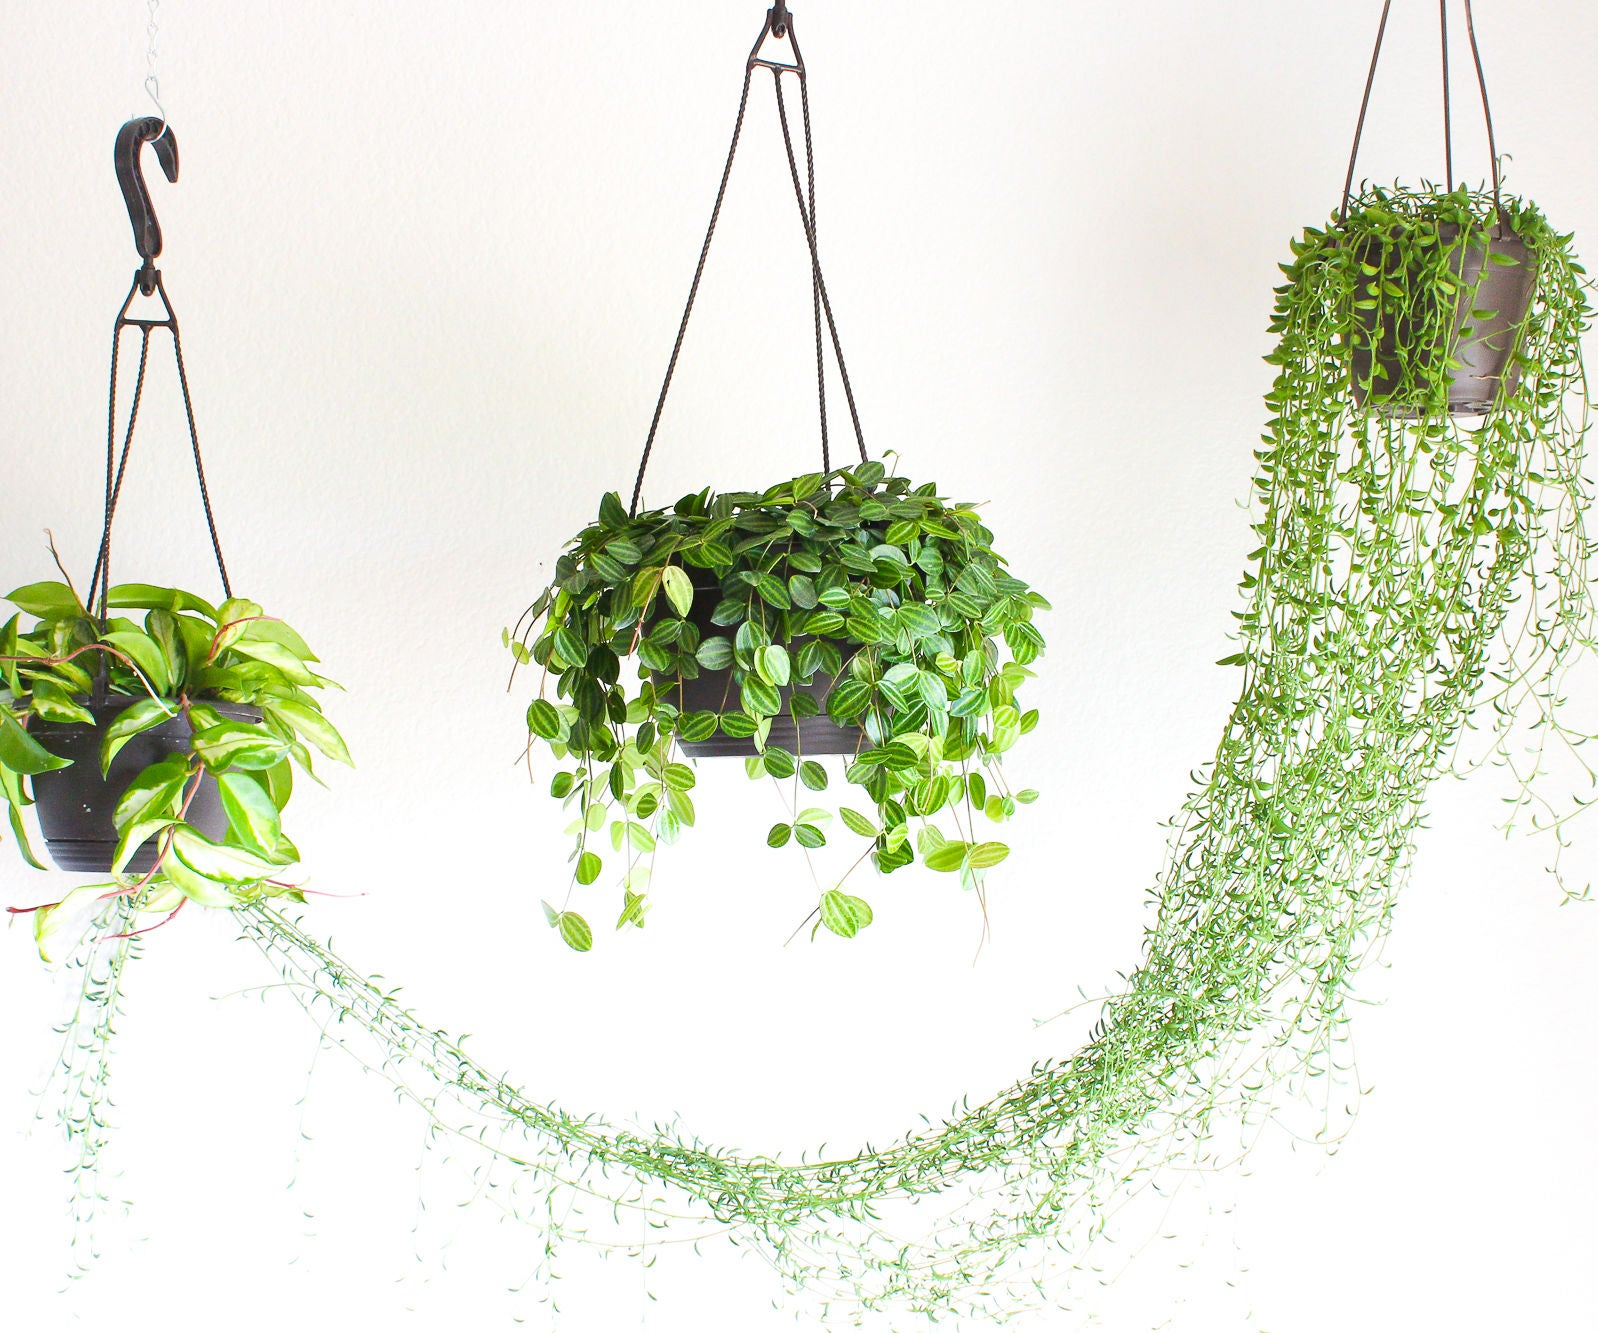 How to Hang a Plant From the Ceiling : 5 Steps (with Pictures)